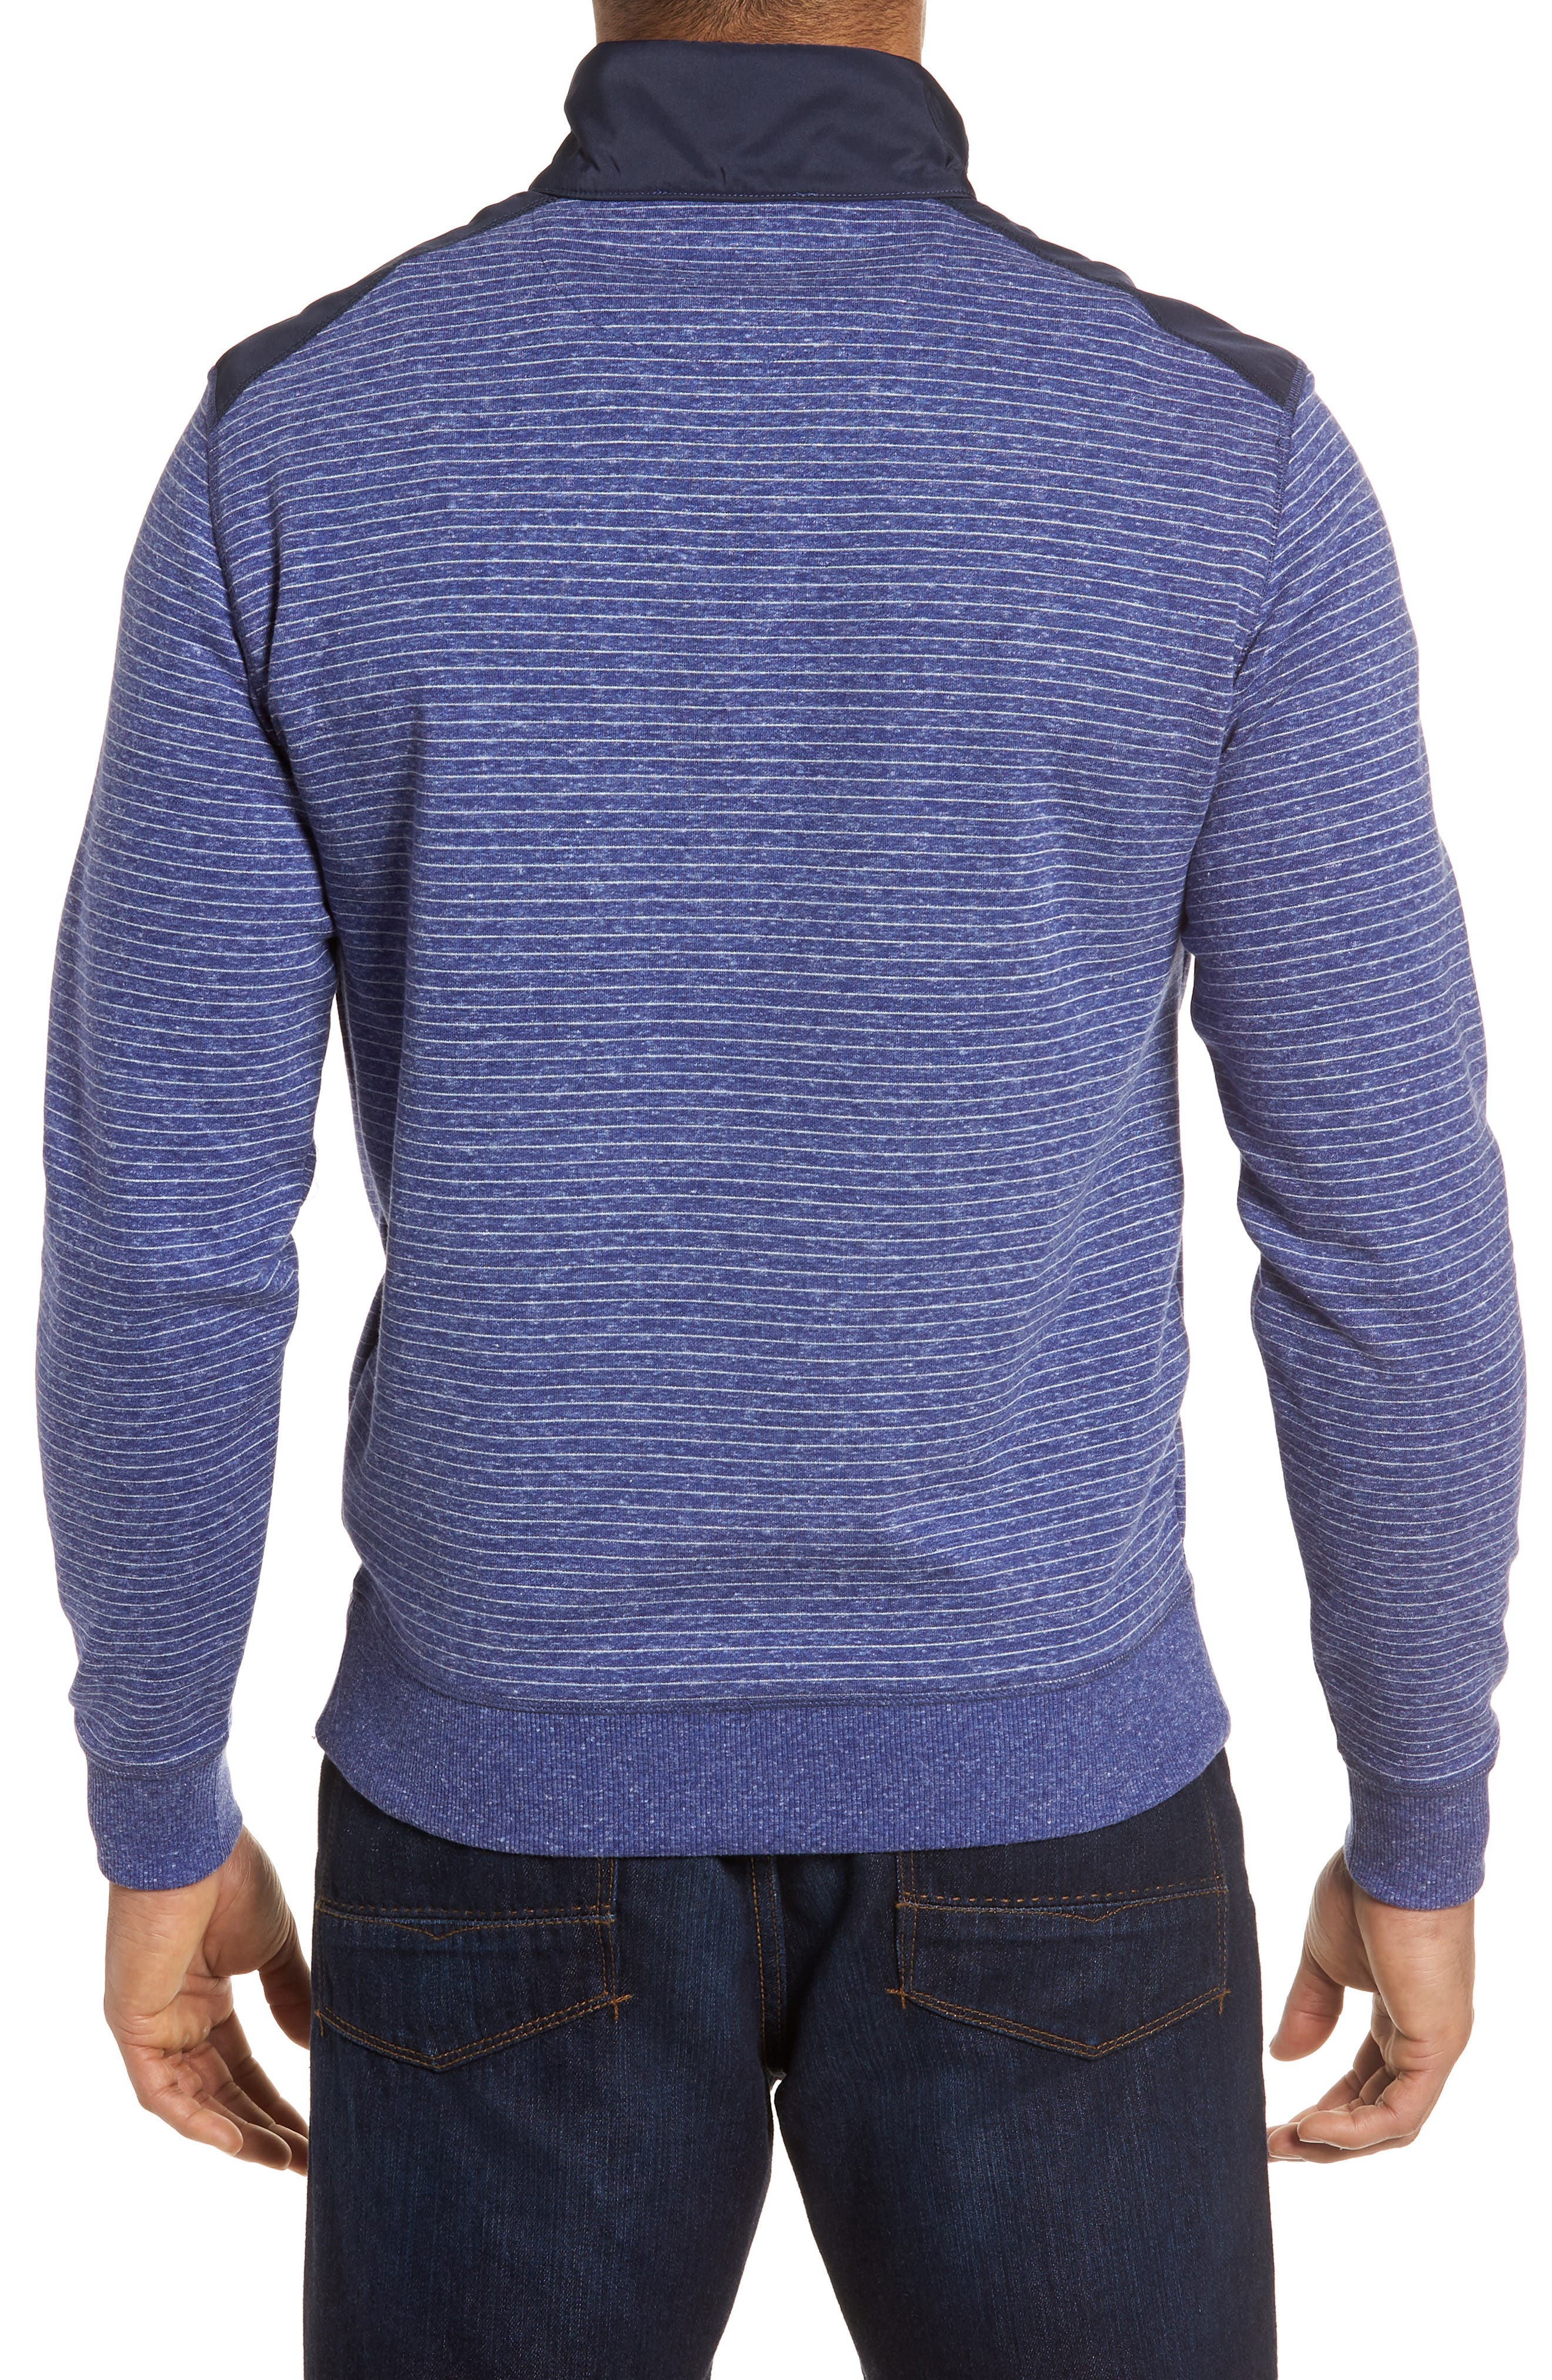 Regular Fit Stripe Quarter Zip Pullover,                             Alternate thumbnail 9, color,